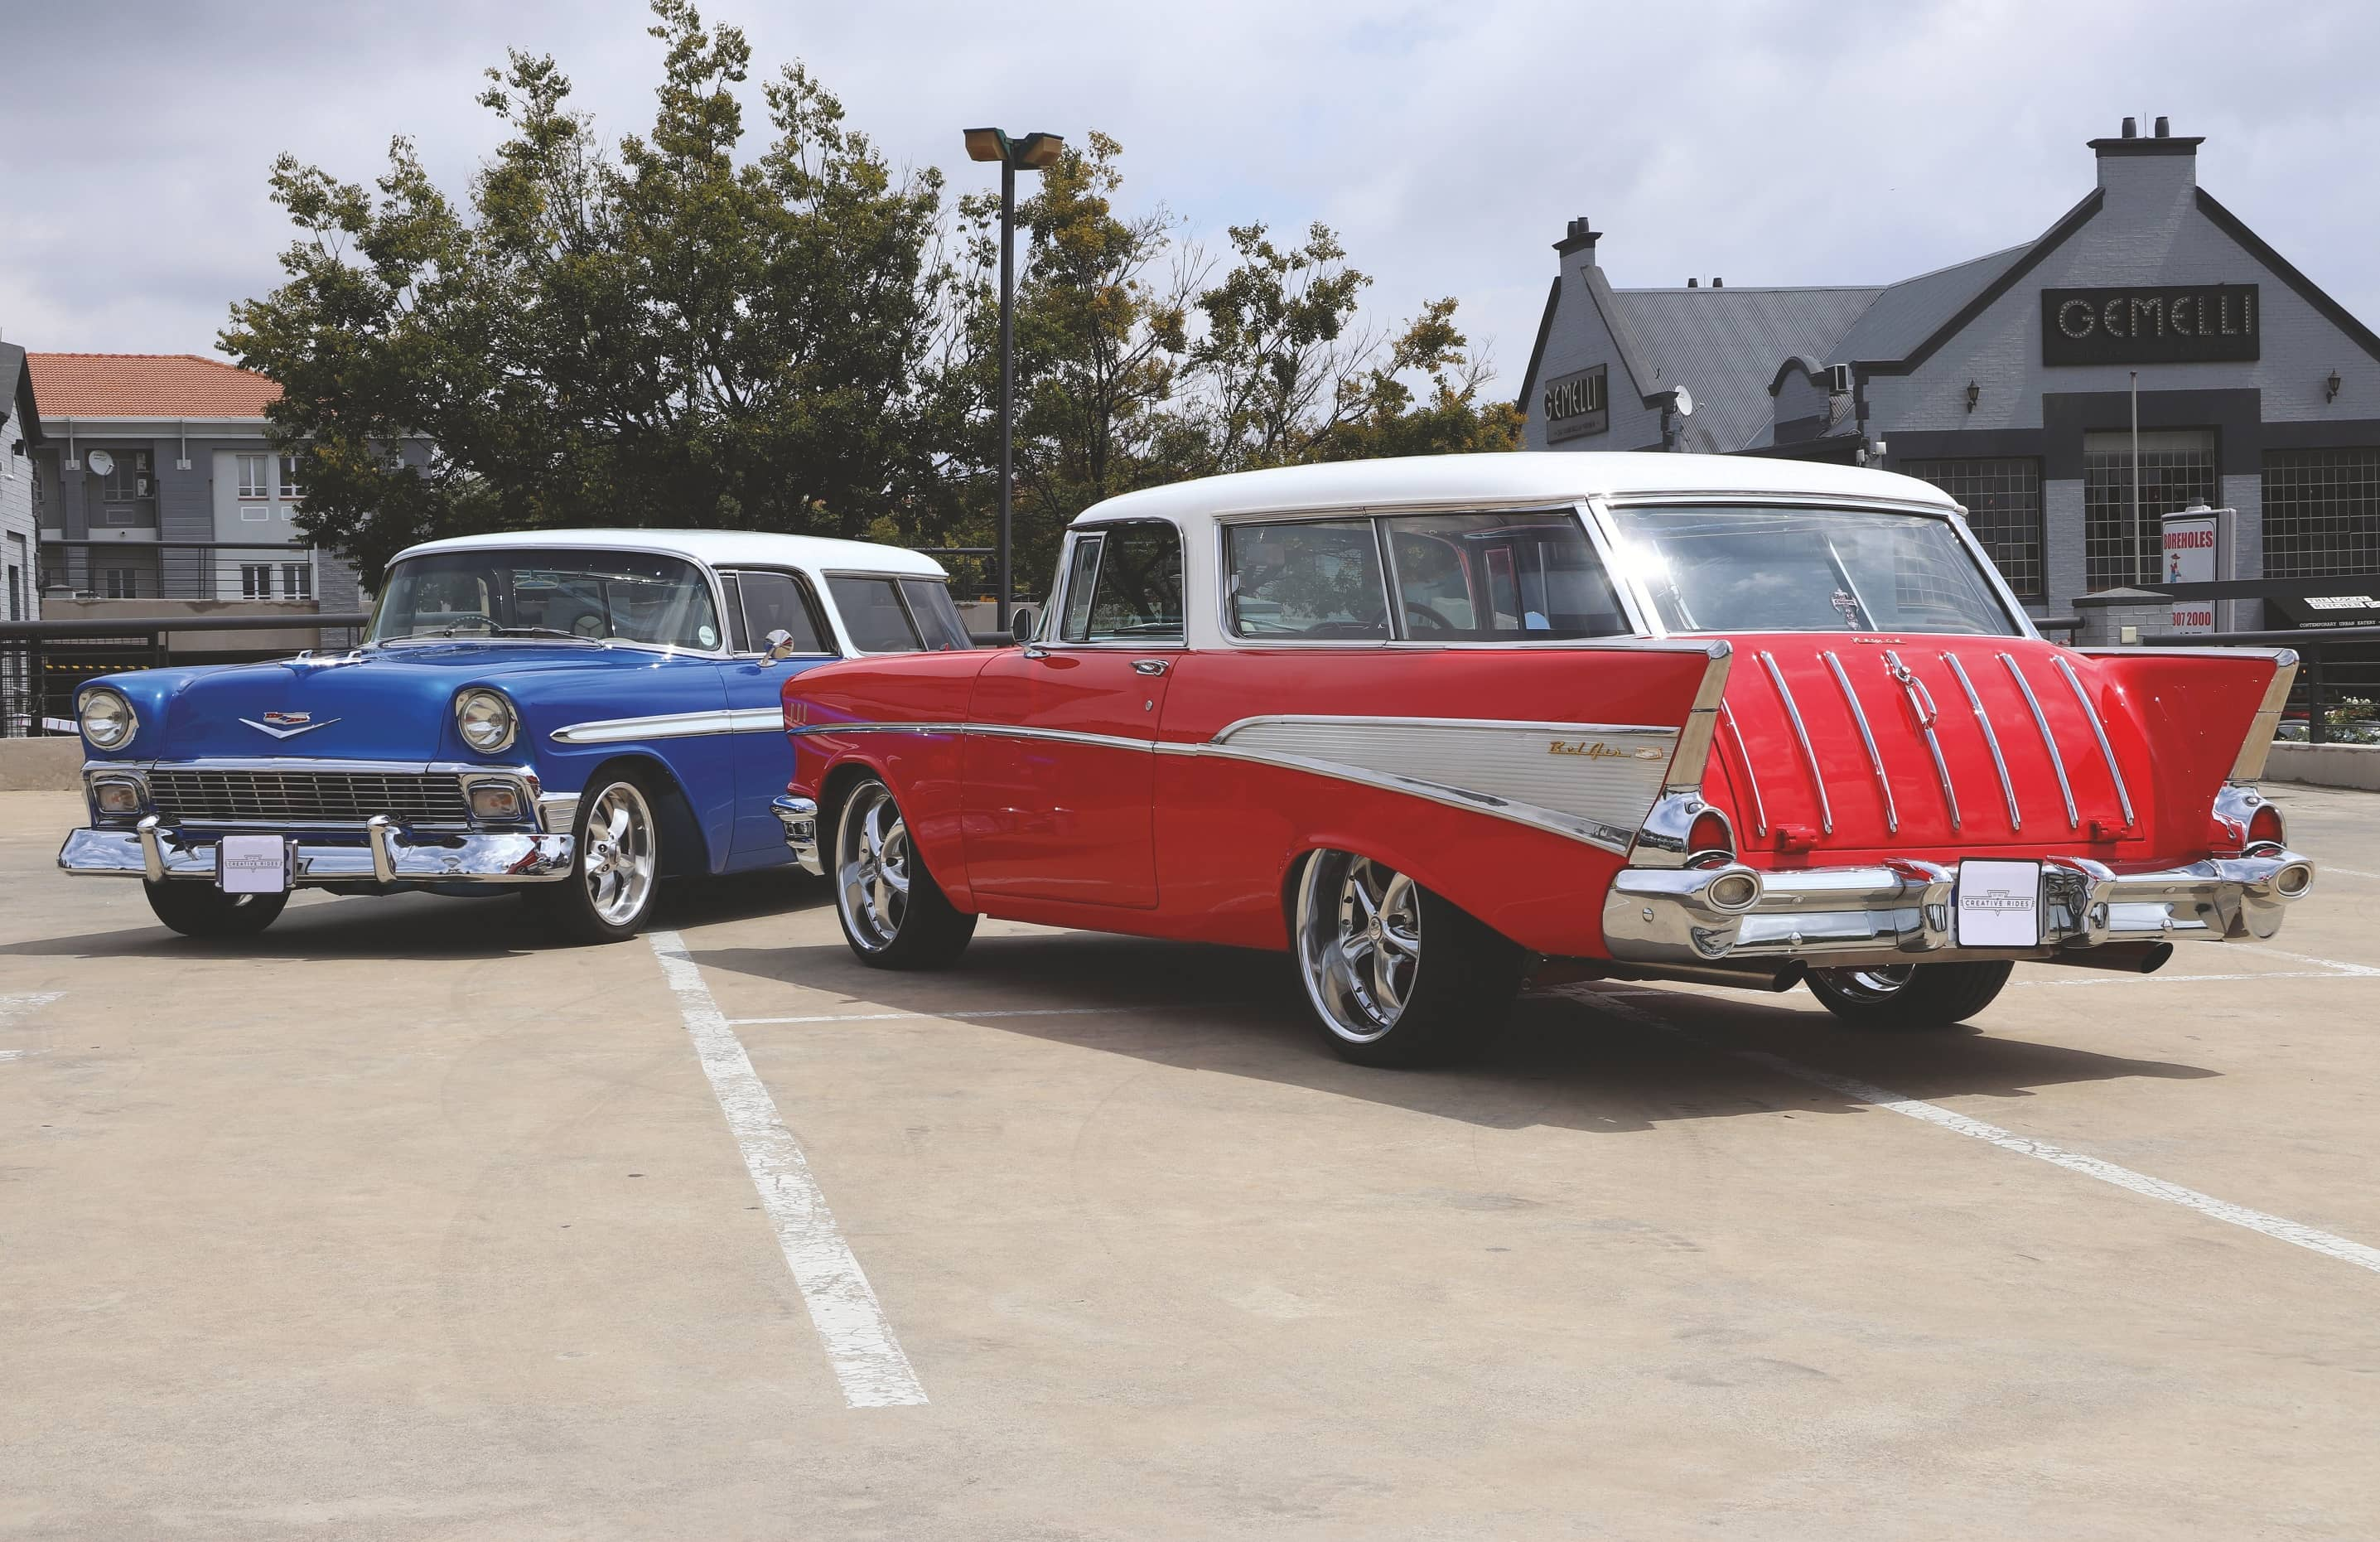 1956 & 1957 Chevy Nomads - It's Not Just A Wagon, It's A Nomad